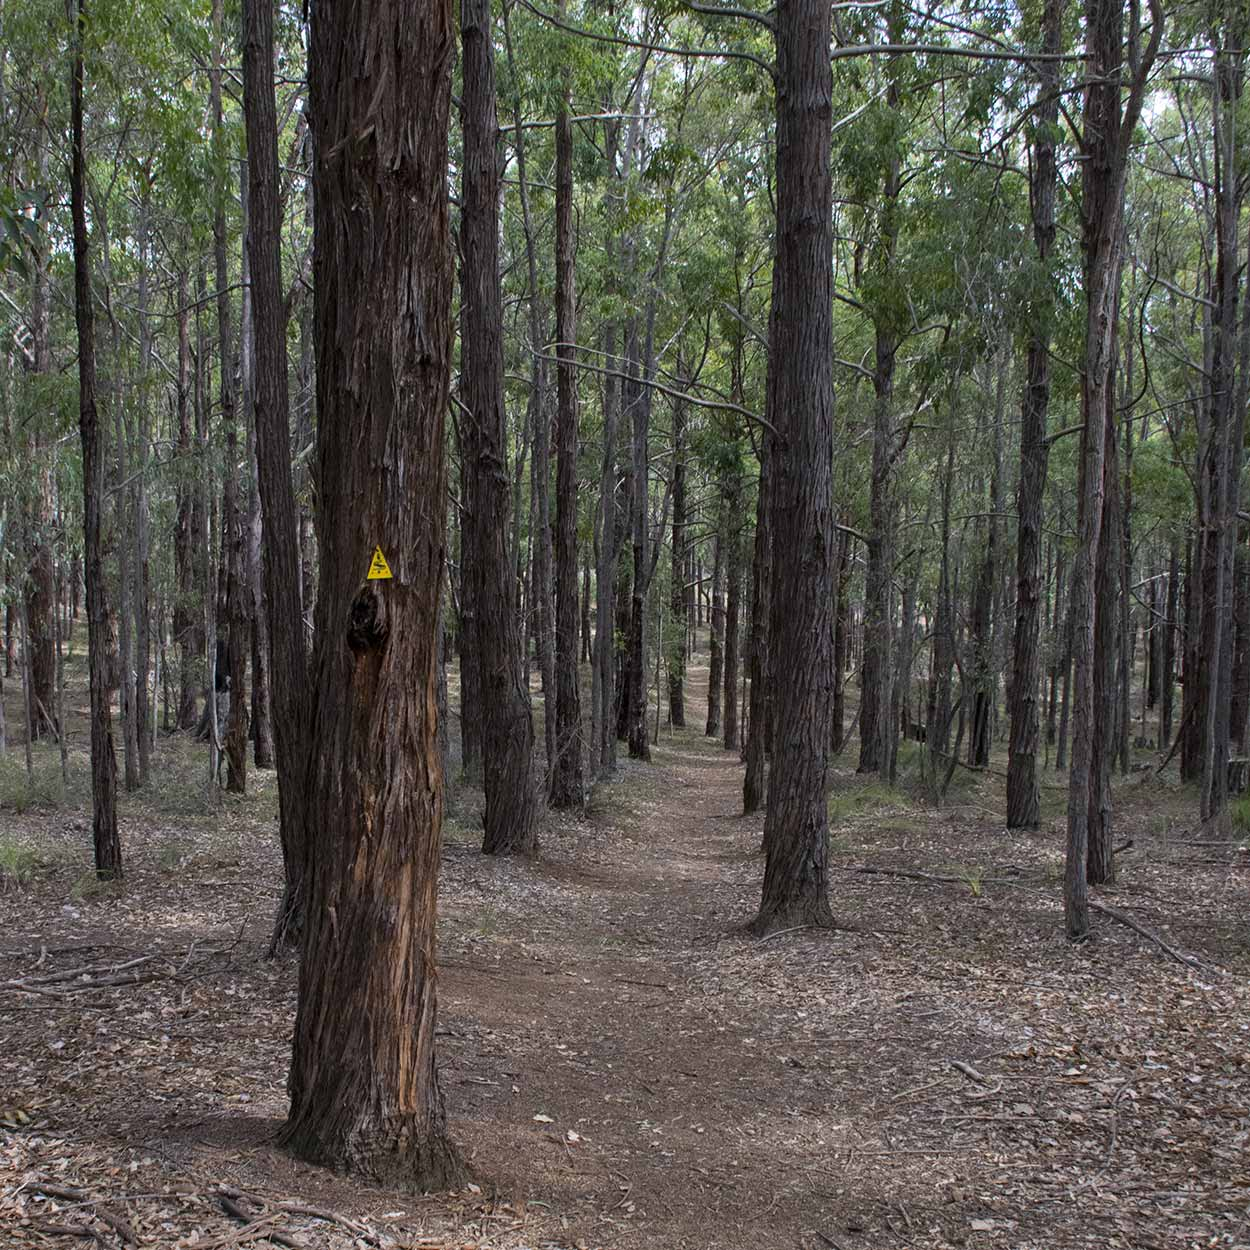 Hiking the Bibbulmun Track to Kalamunda, Perth, Western Australia